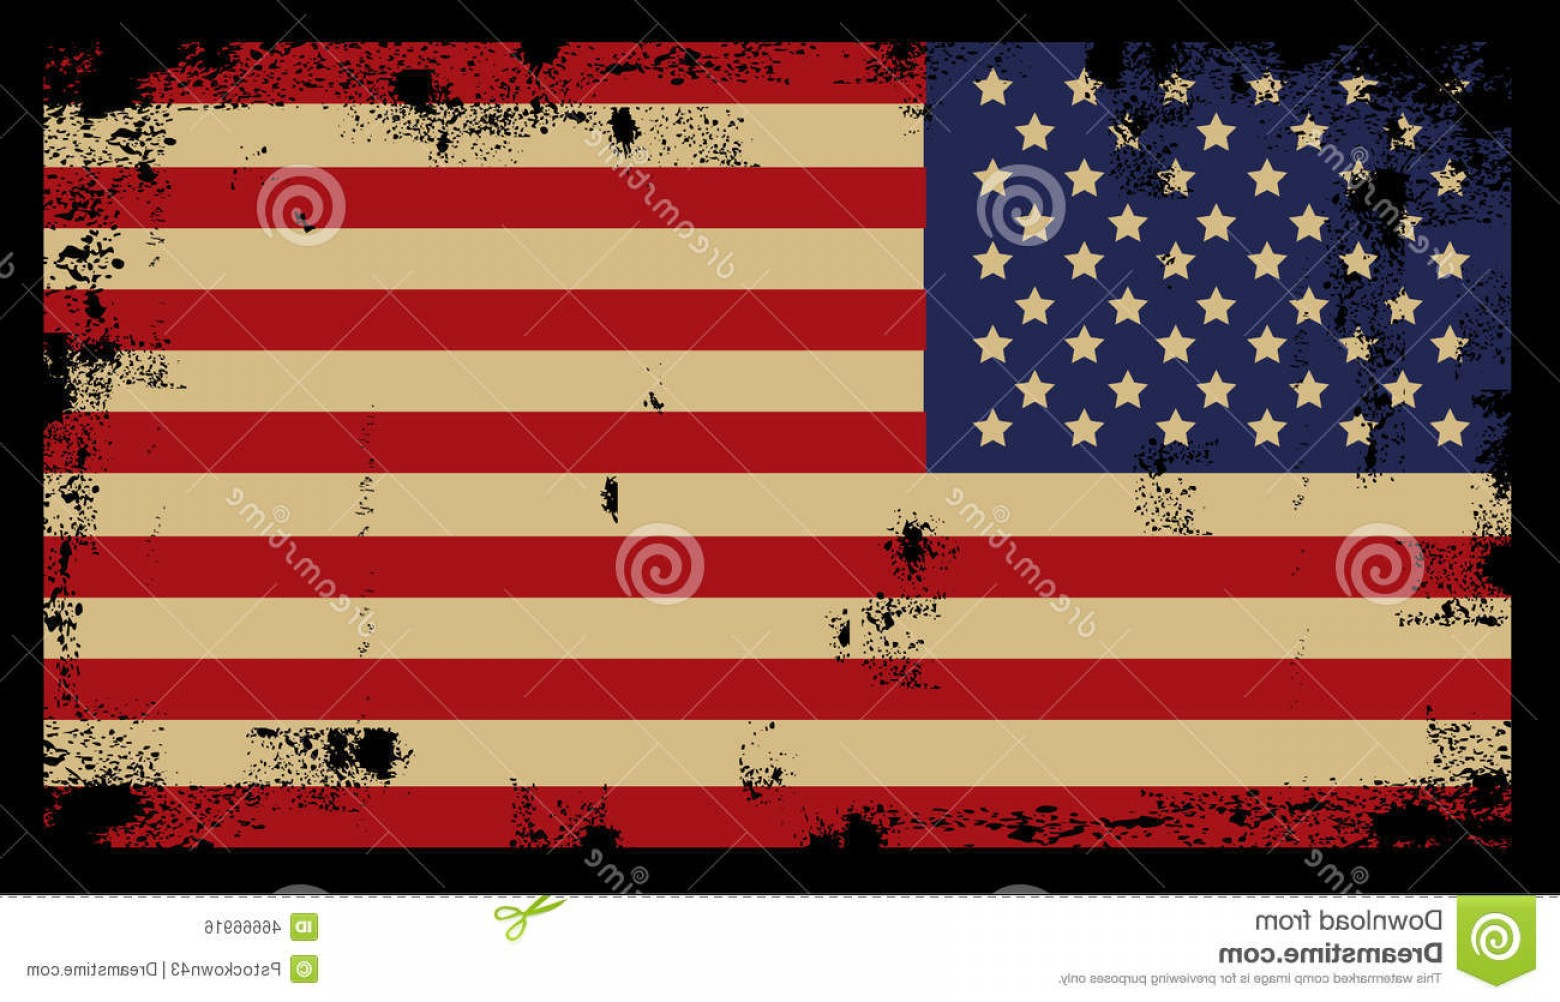 Rustic American Flag Vector: Stock Illustration Grunge American Background Flag Vector Image